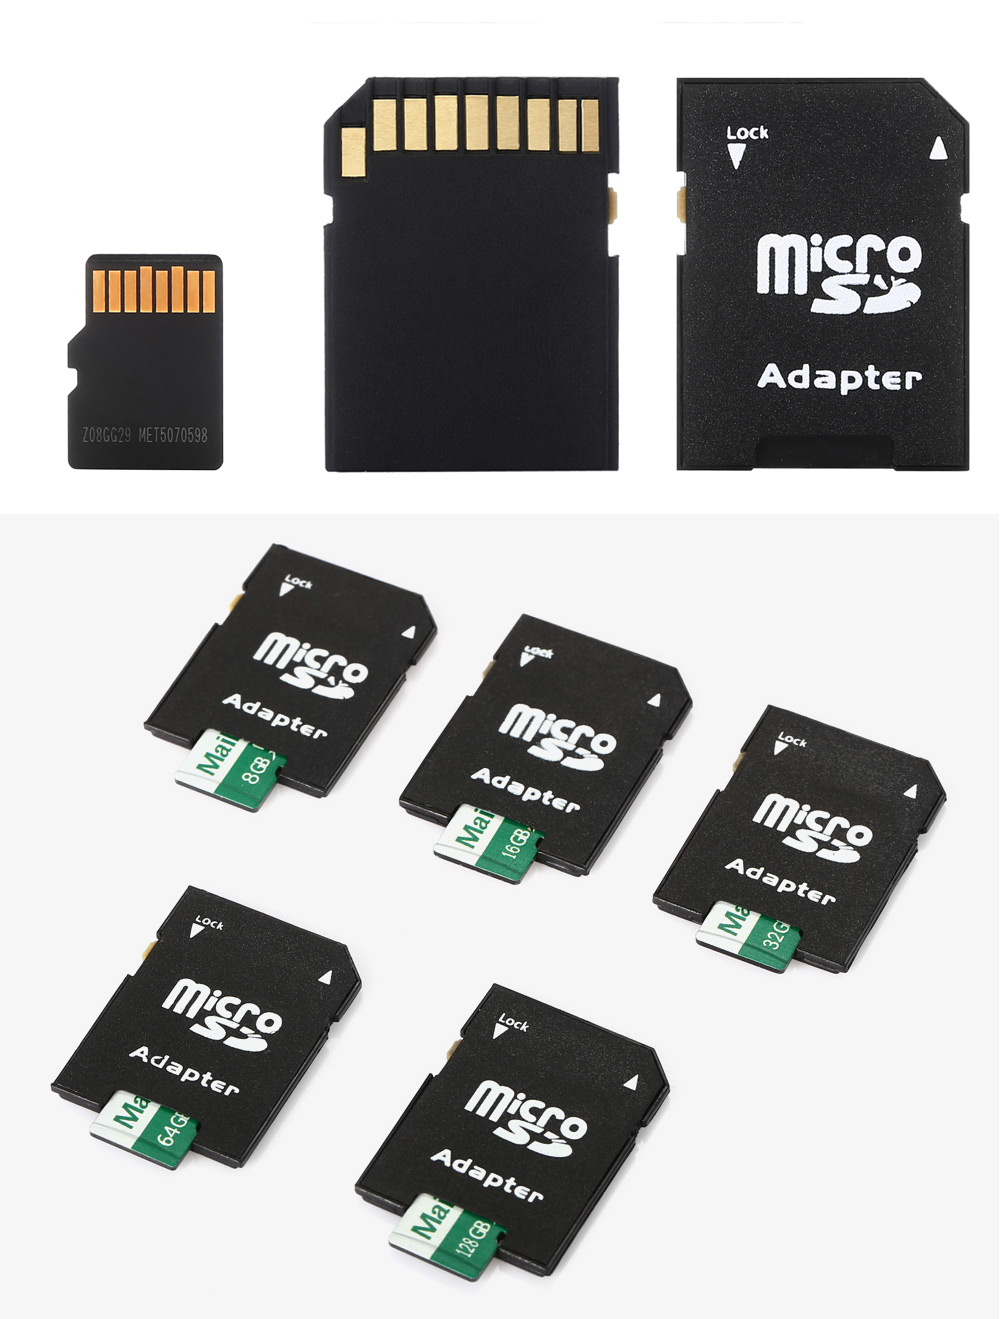 Maikou 2 in 1 8GB Micro SD Card + Adapter Data Storage Device